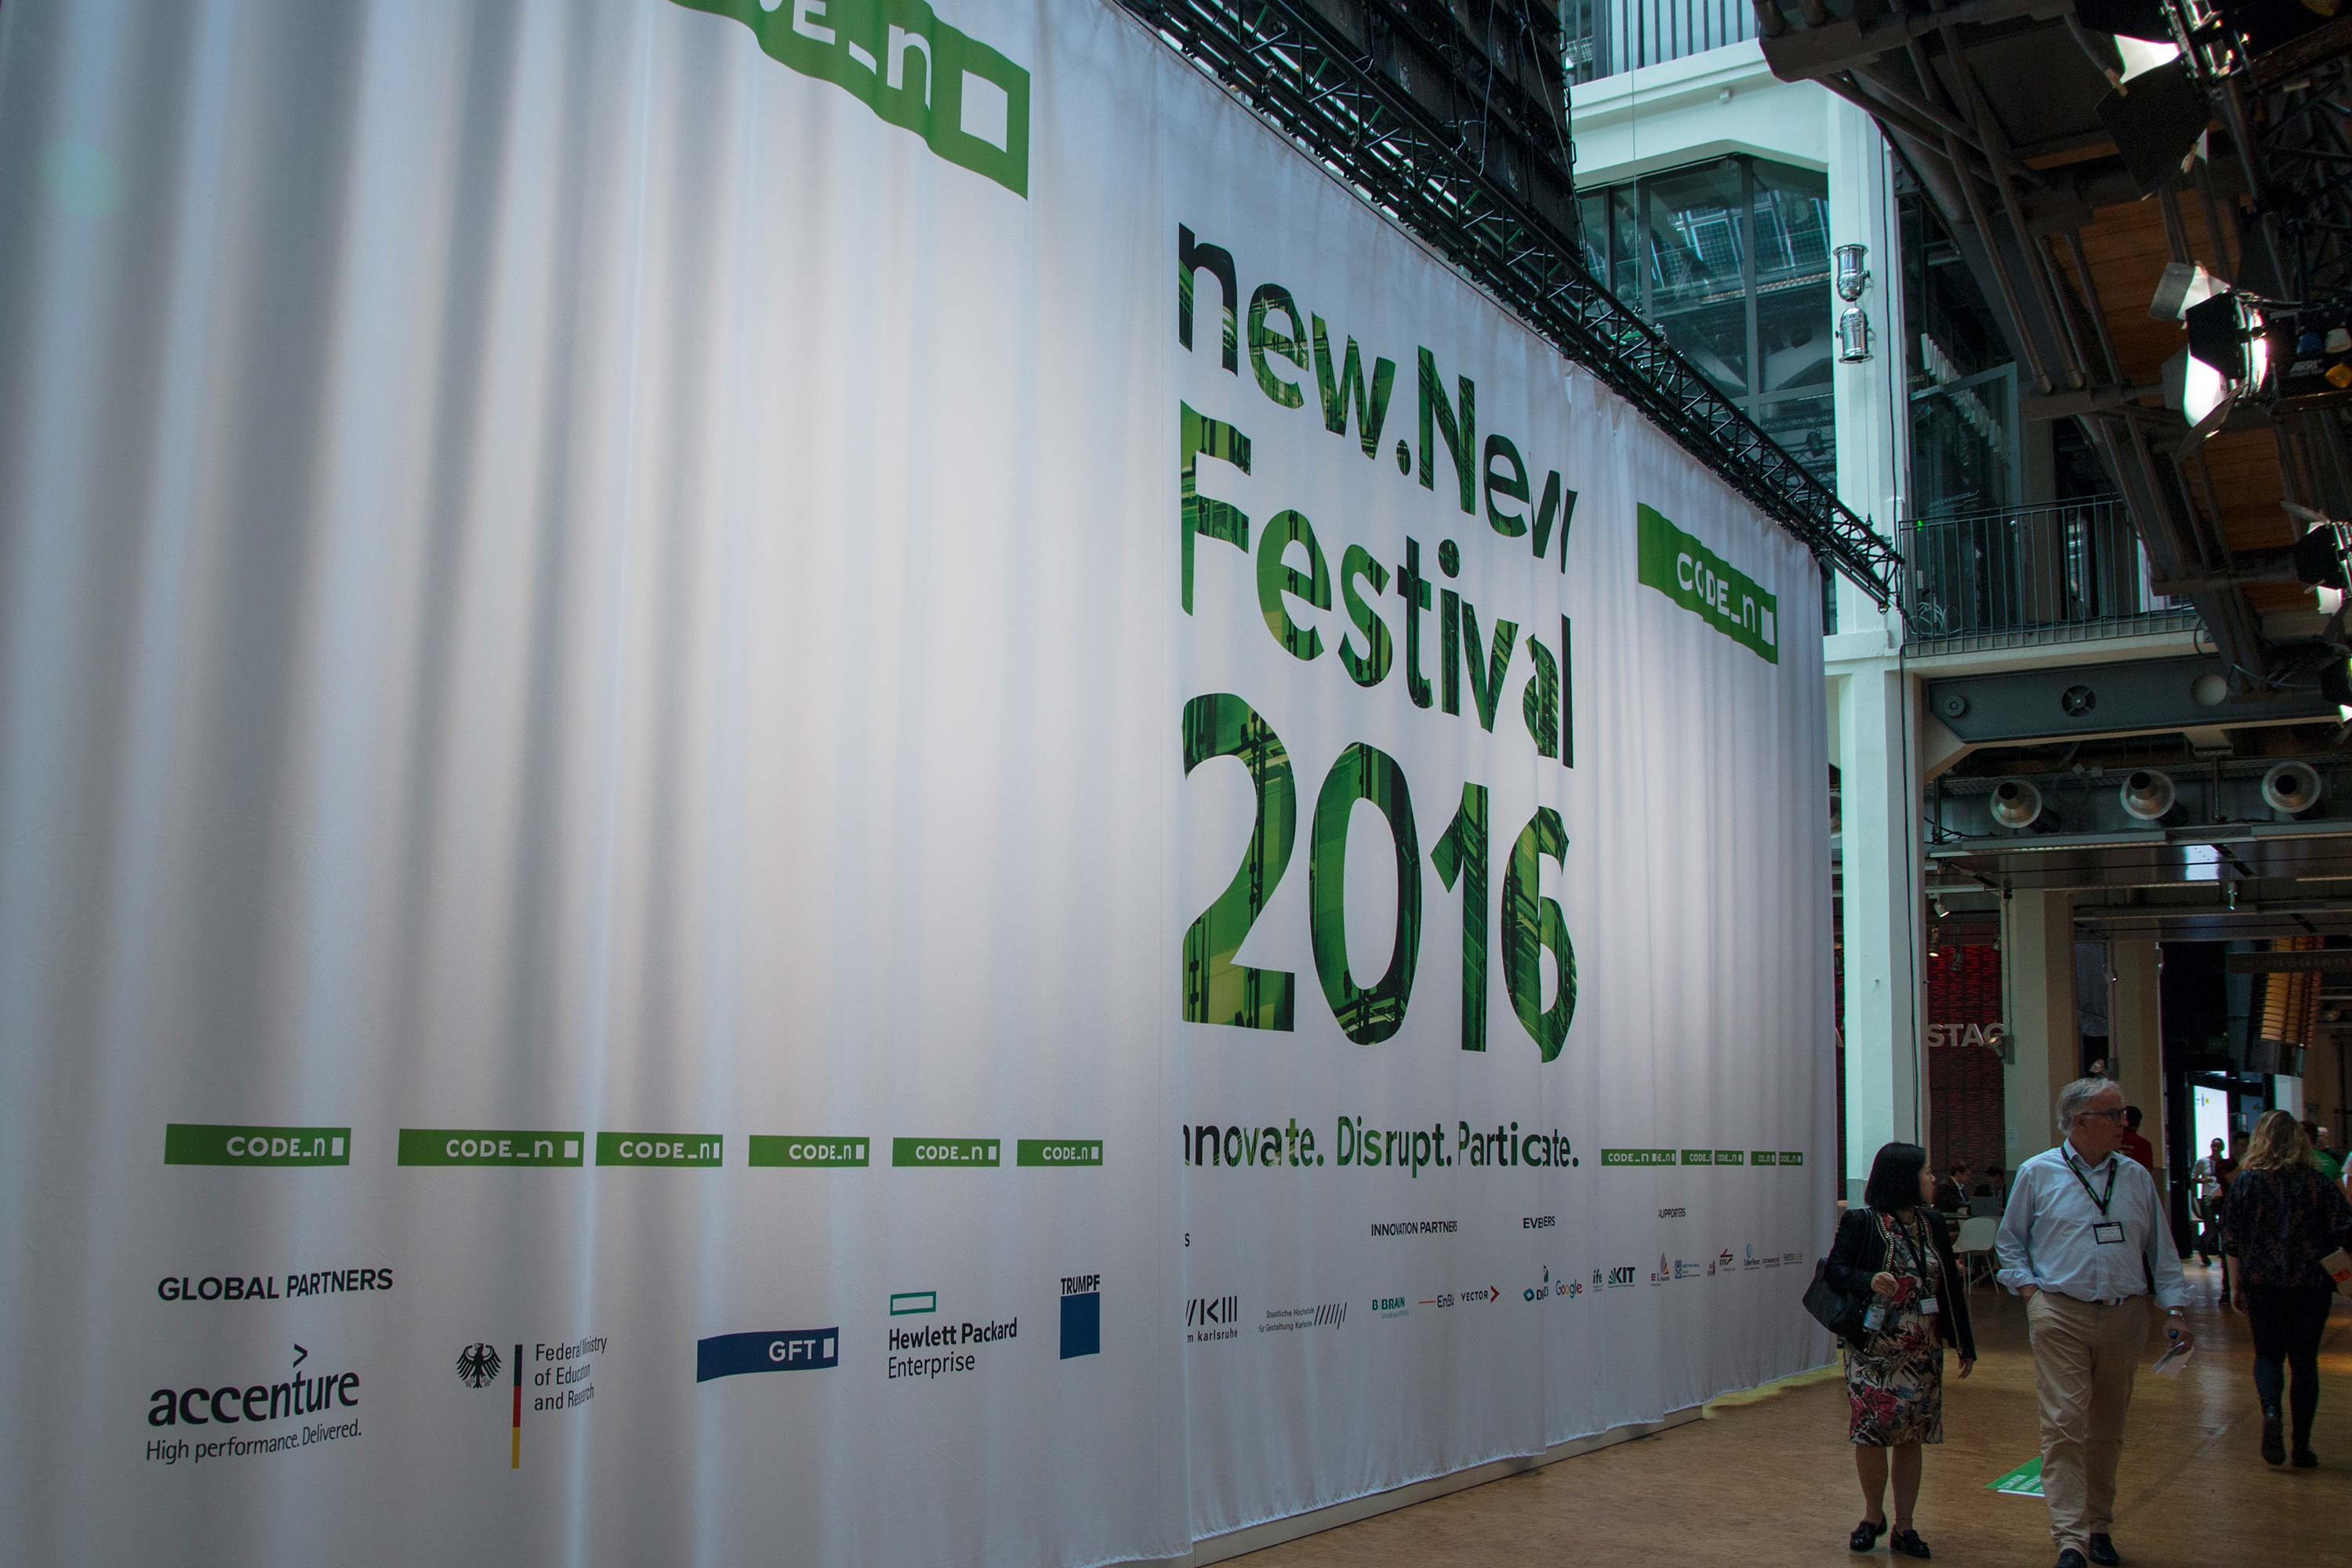 Code_n newNew Festival Ambient 4